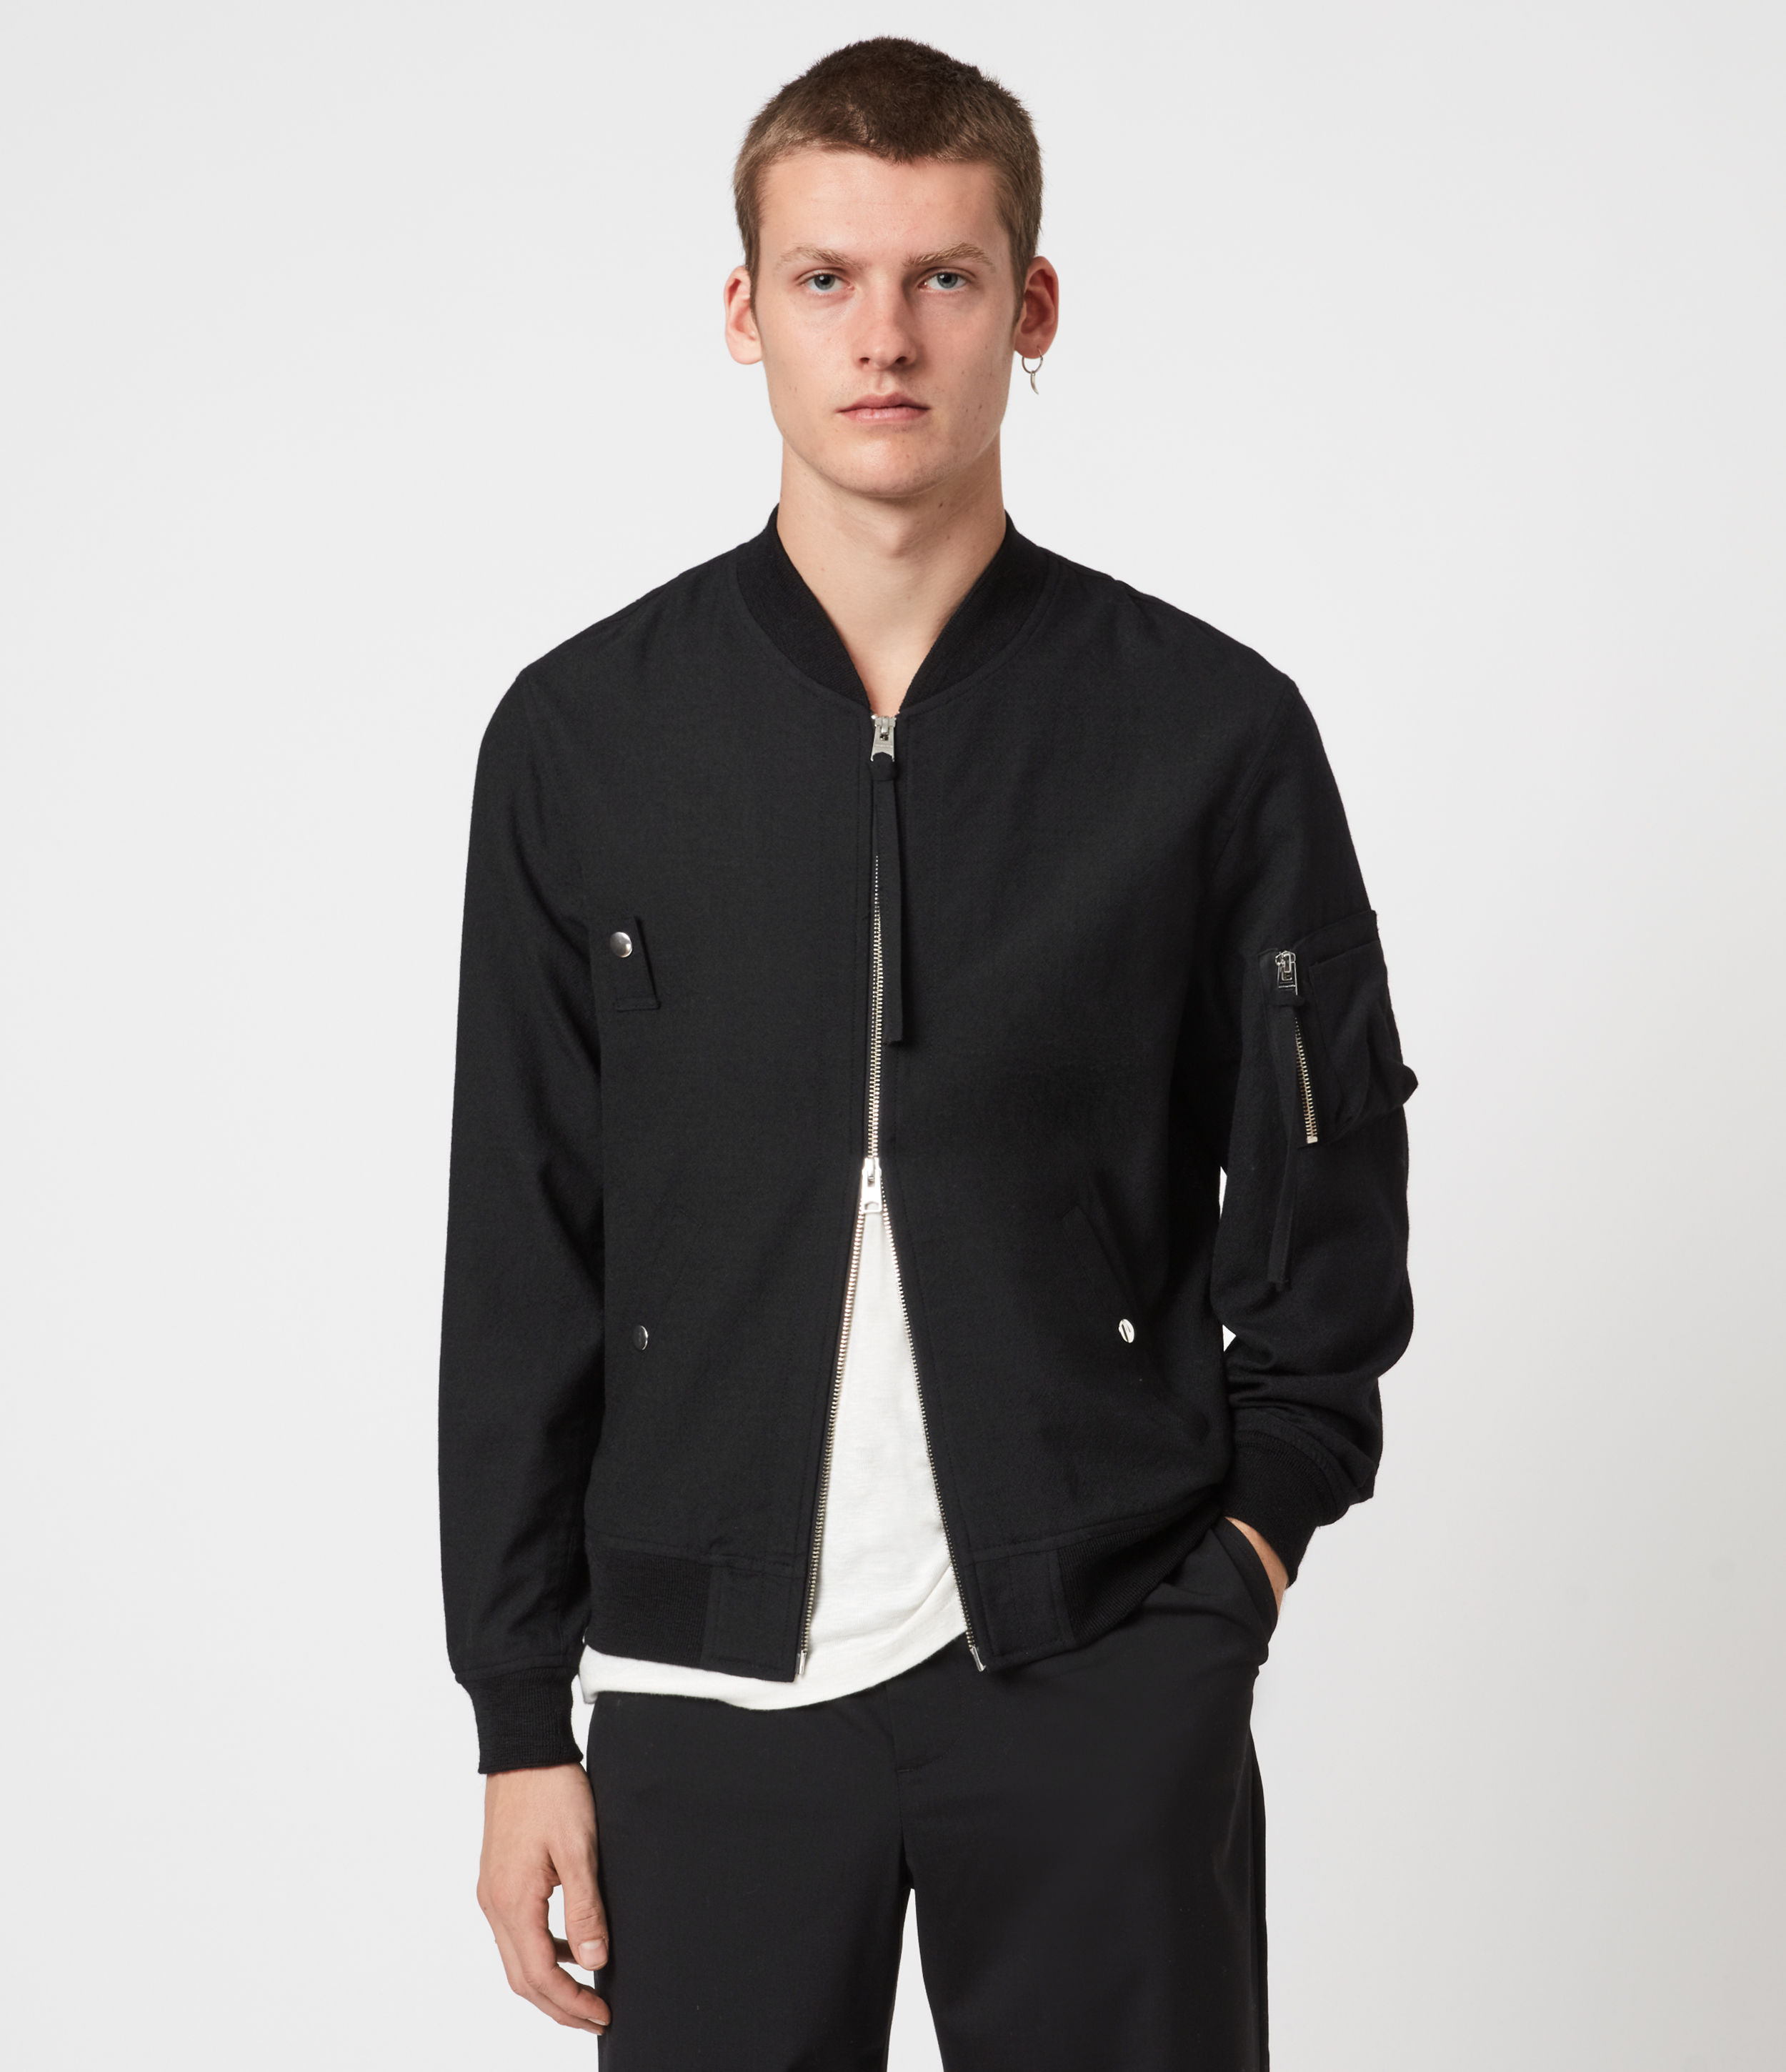 AllSaints Mens Neo Bomber Jacket, Black, Size: XL